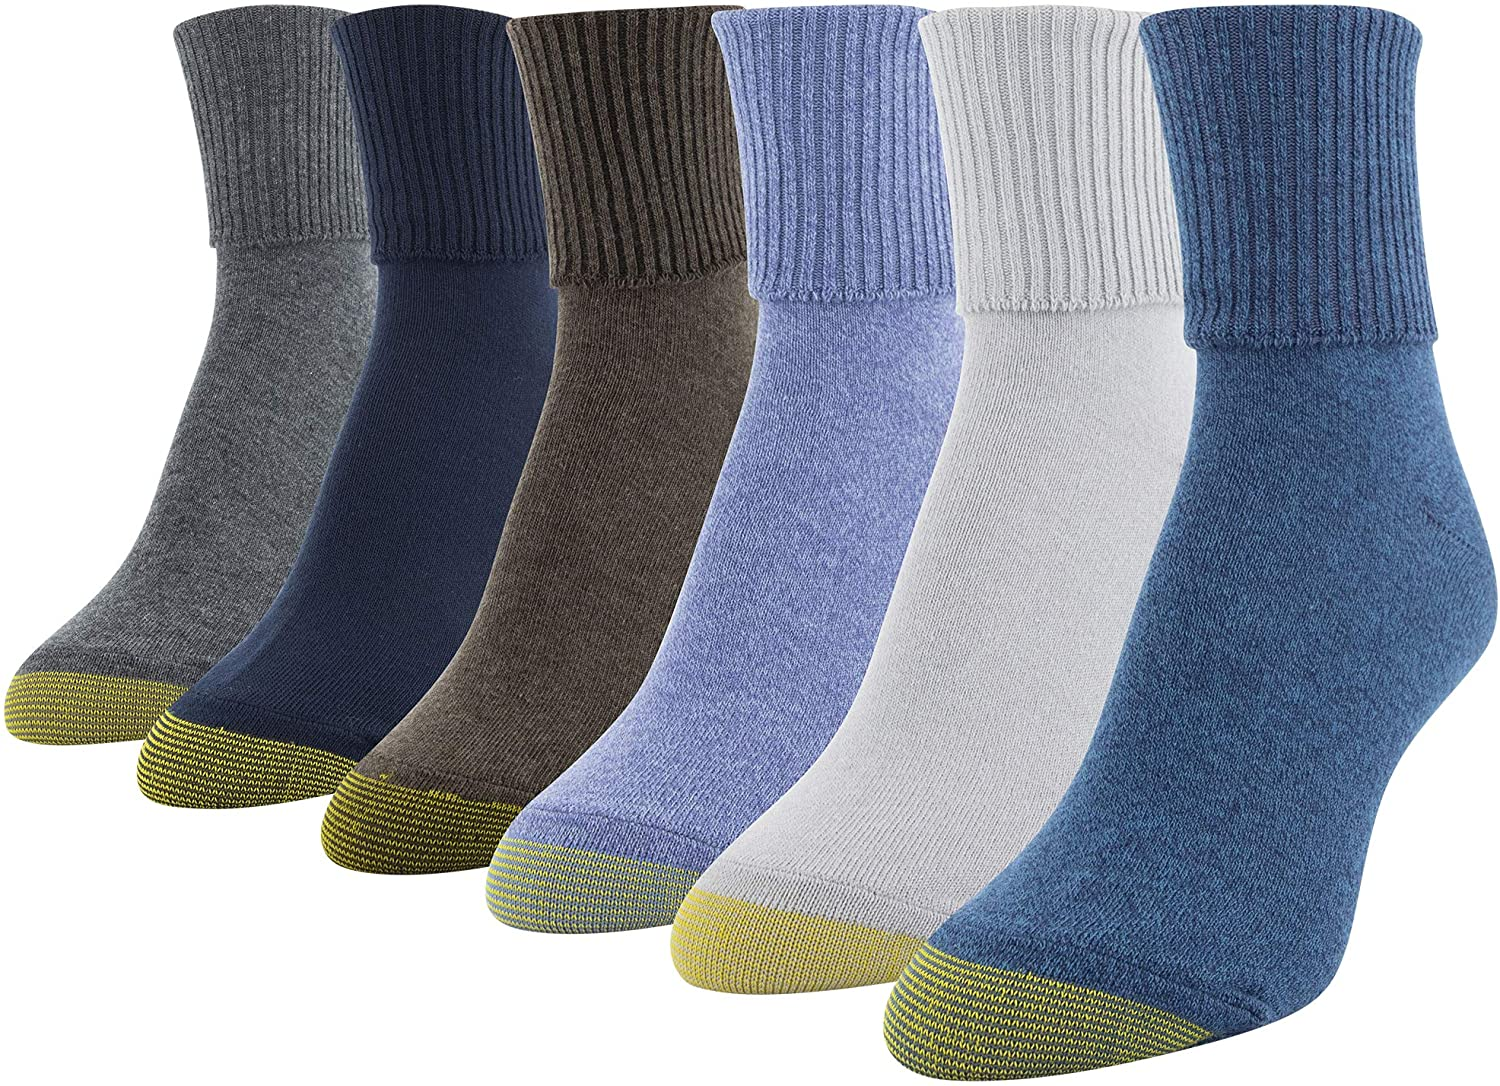 Gold Toe Womens 6 Pack Turn Cuff Socks Black 9-11 Outdoor Casual Wear Shoes New